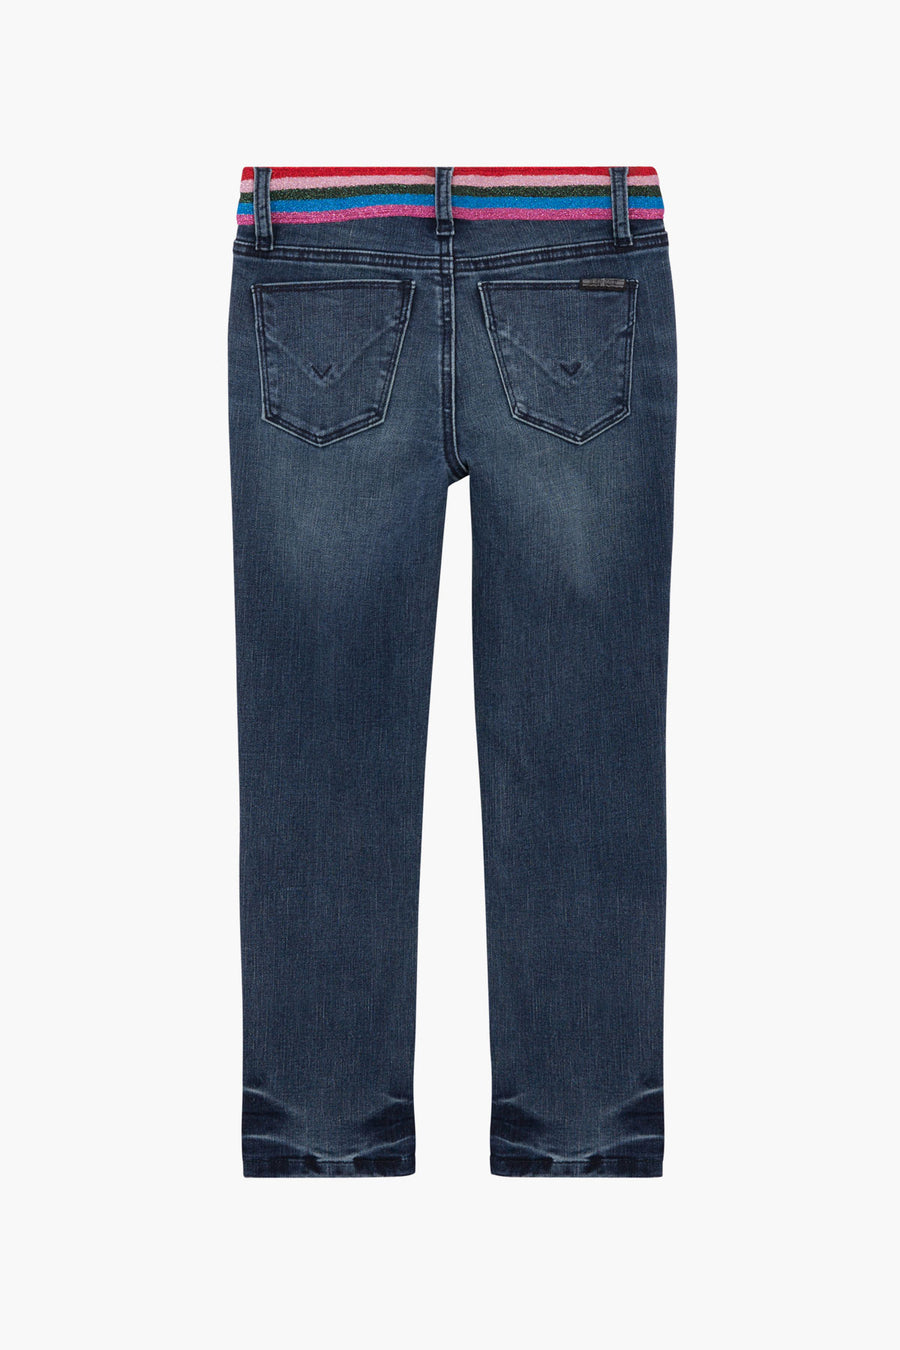 Hudson Cody Ankle Crop Girls Jeans